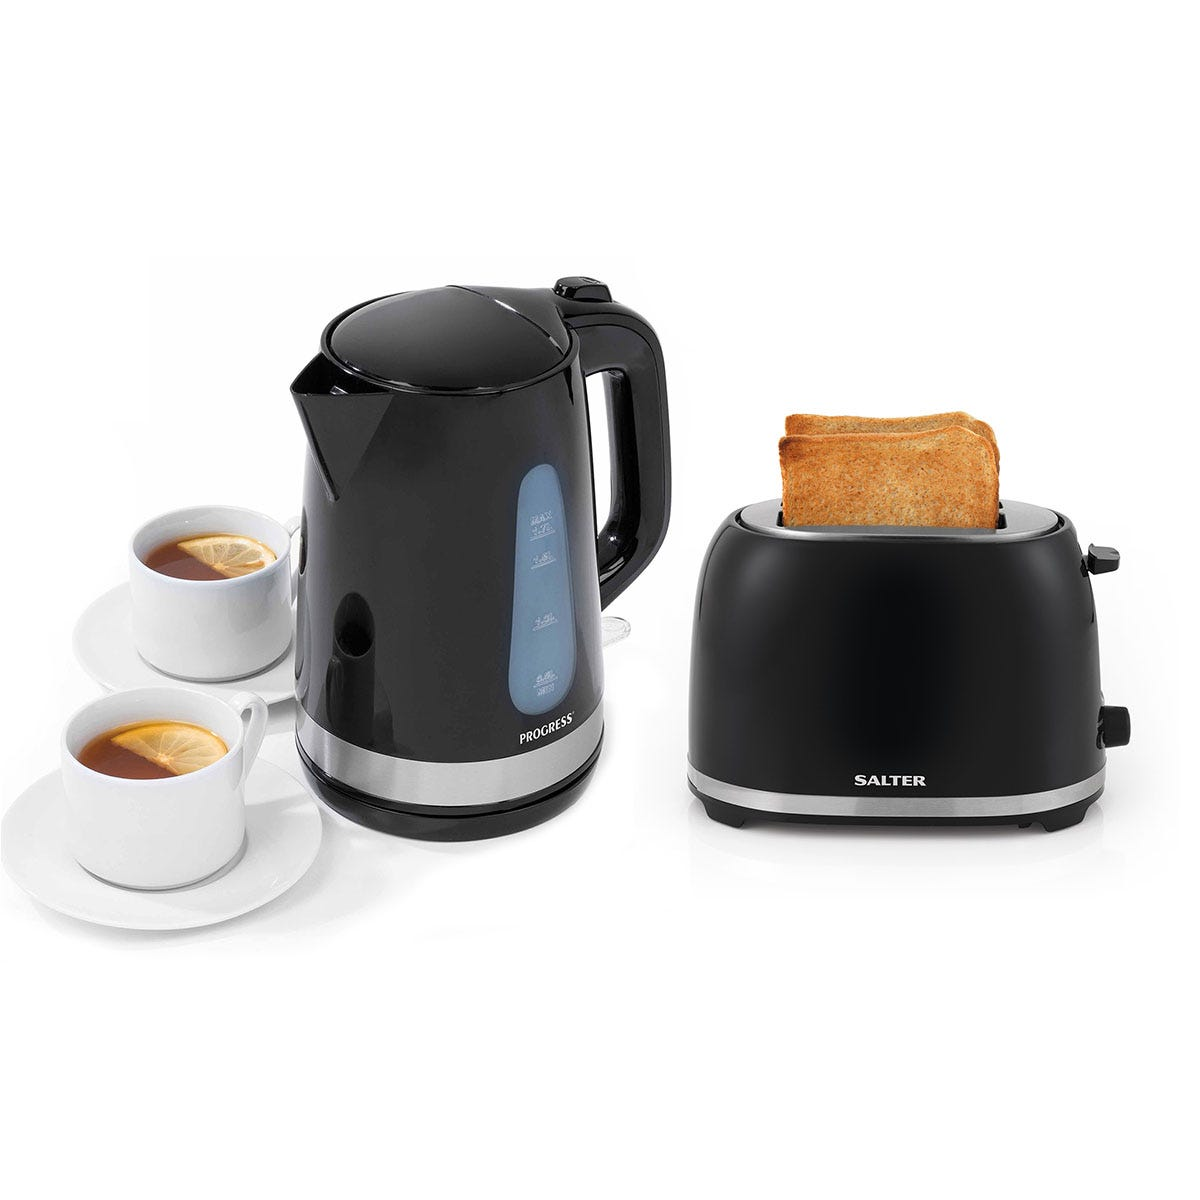 Salter COMBO-2088 Deco Collection Kitchen 1.7 L Kettle and Two Slice Toaster with Browning Control